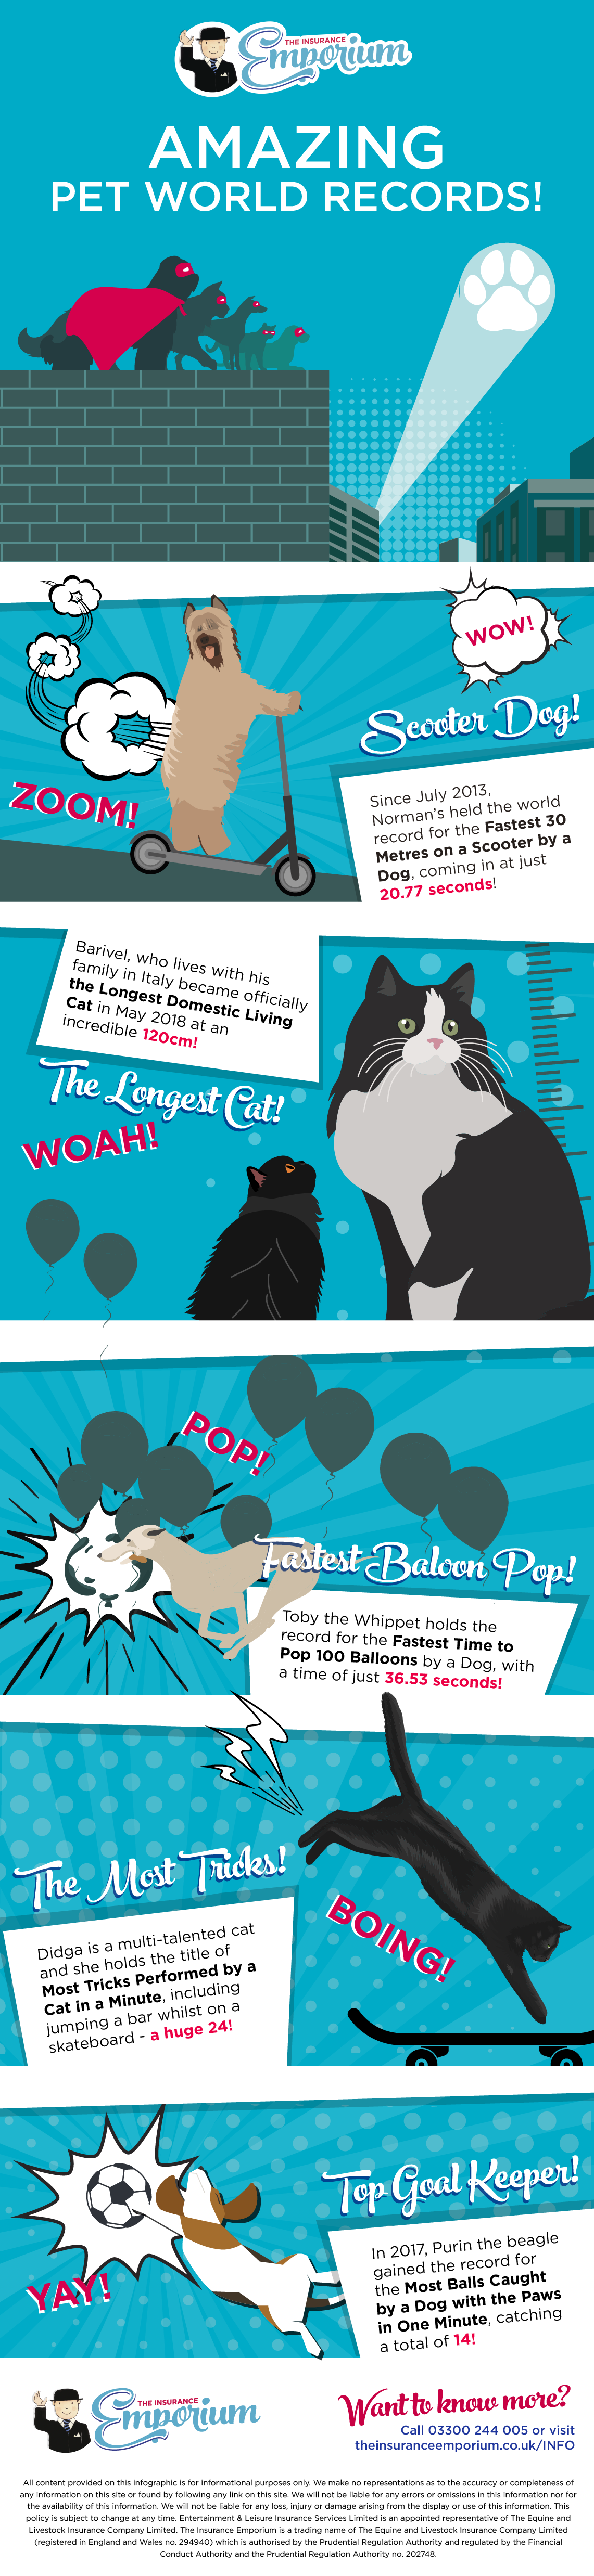 Pet world records infographic